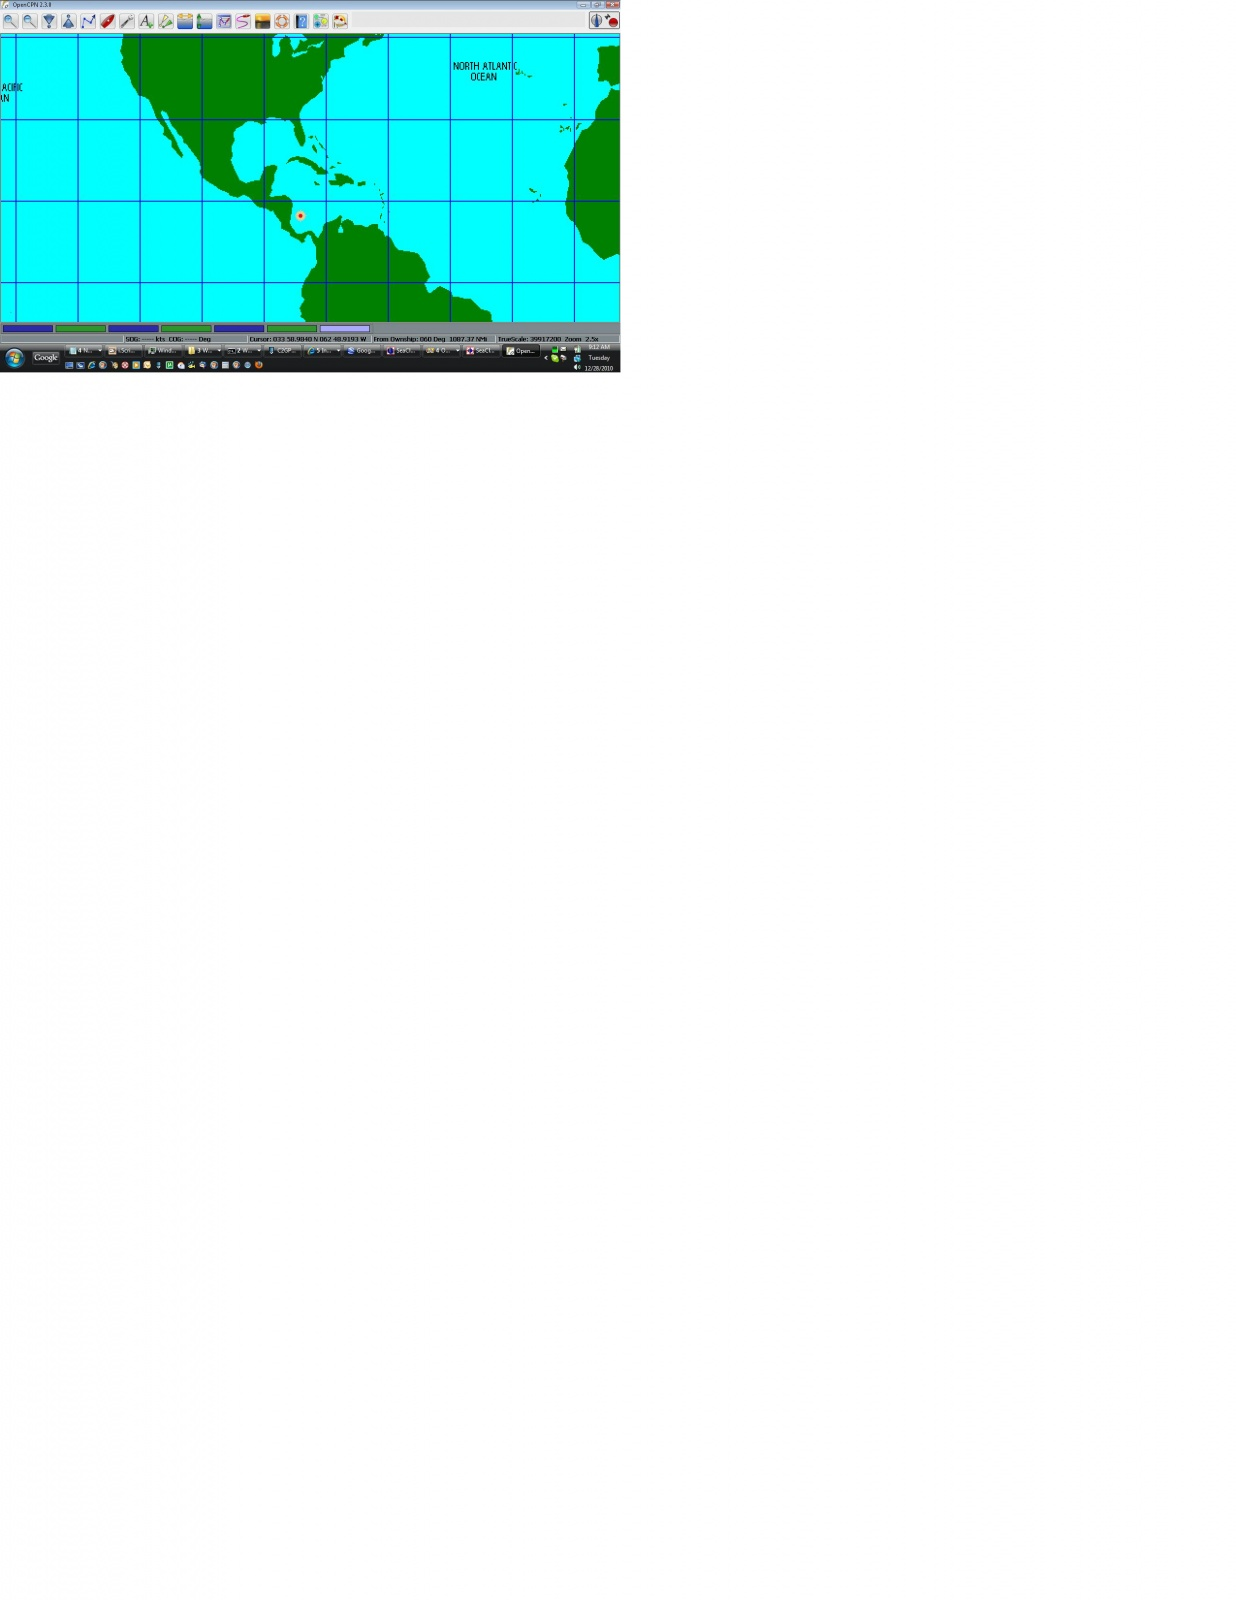 Click image for larger version  Name:Z_World_Chart.jpg Views:132 Size:156.2 KB ID:22310